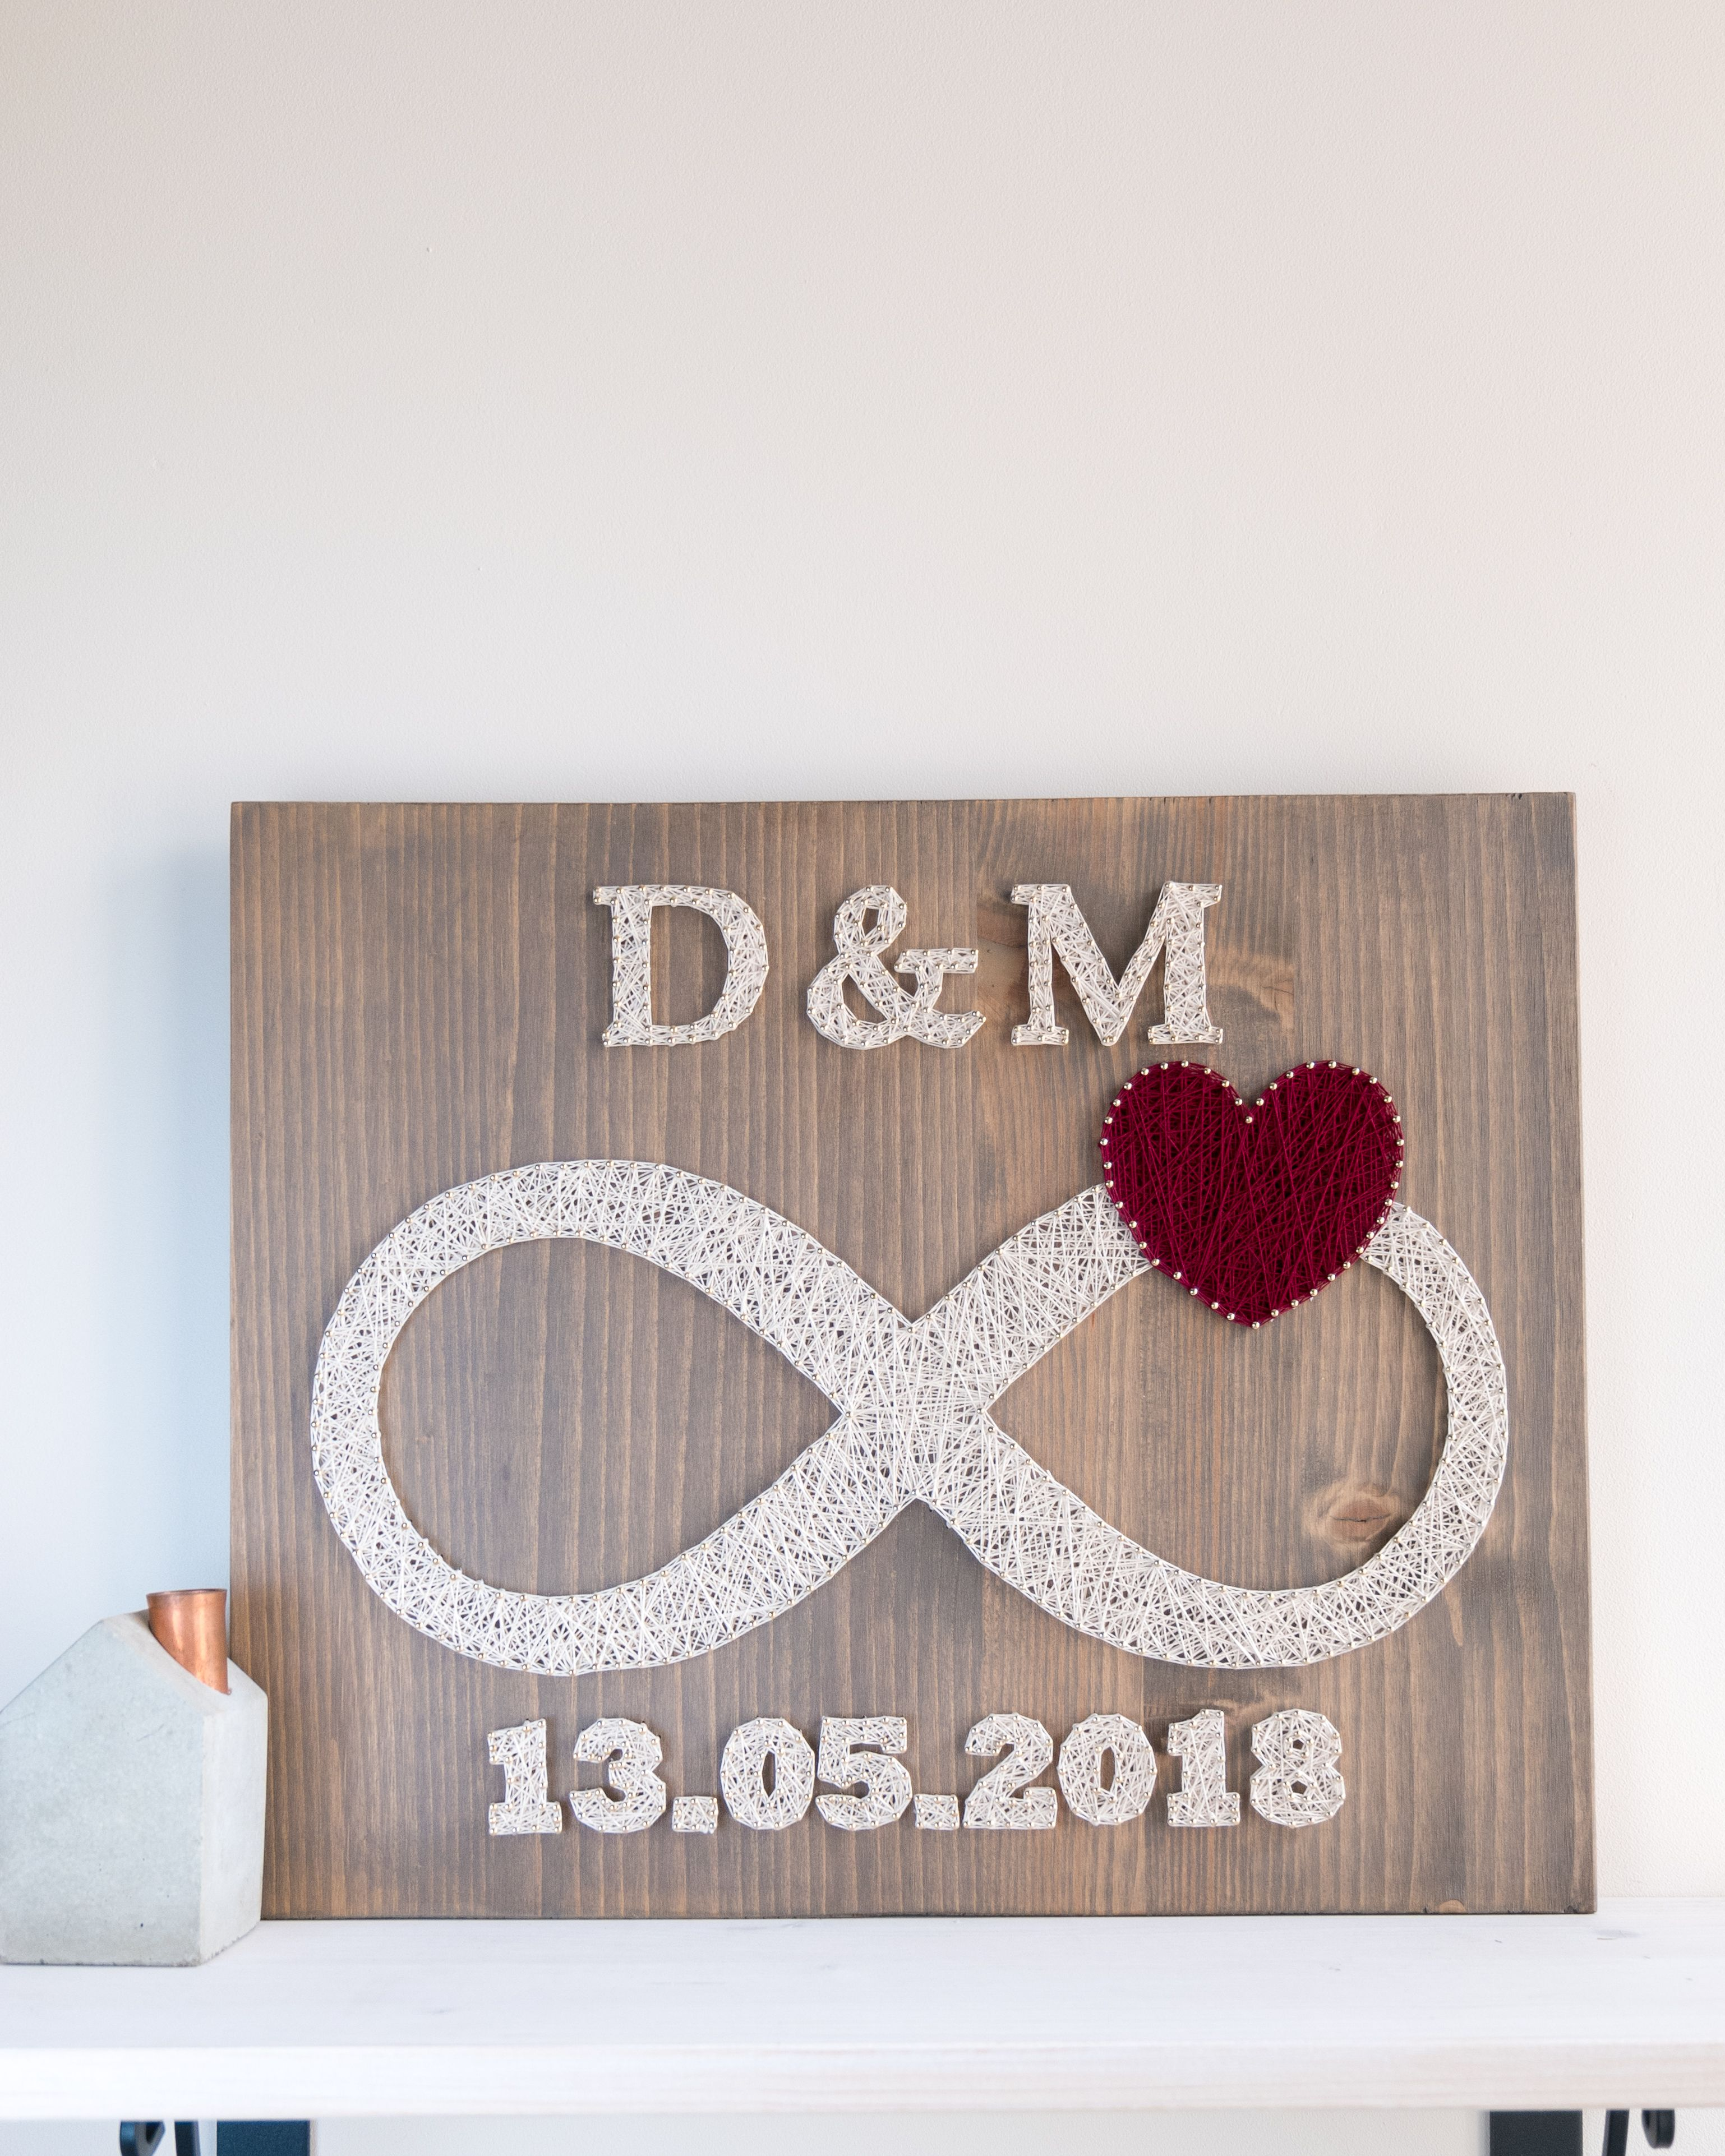 Infinity string art decor with custom dates and red heart decor. Put your (or your friends) special dates on your wall with style :) Made with high quality golden nails and threads which makes finished product more elegant and sophisticated.